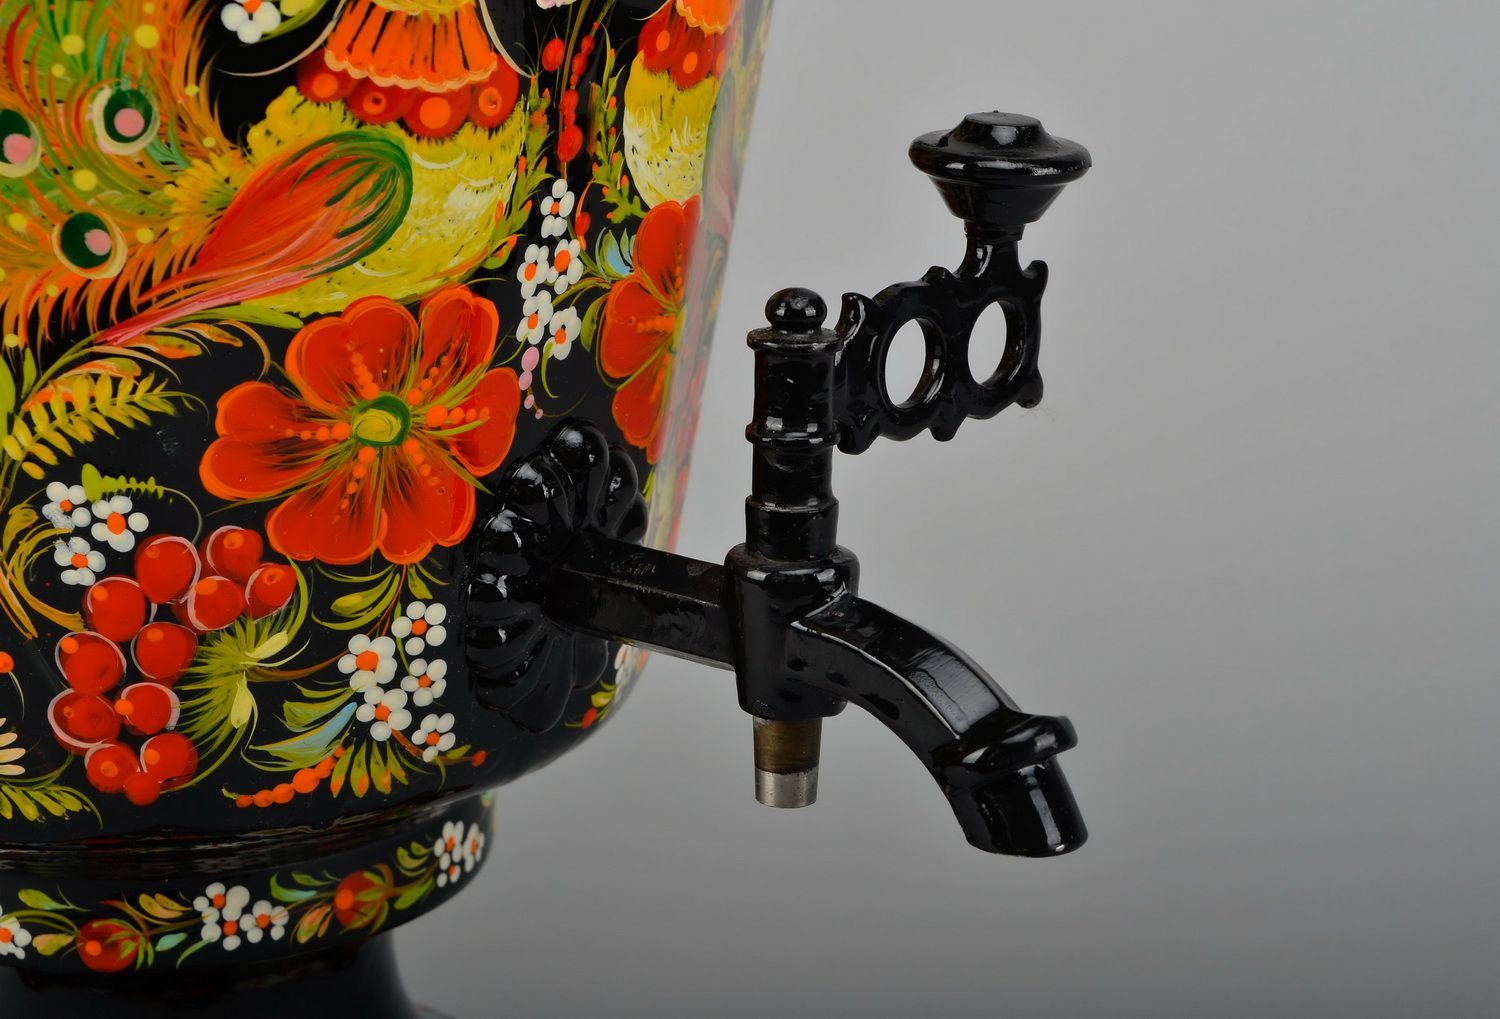 doodads for housing Electric samovar, hand painting  - MADEheart.com